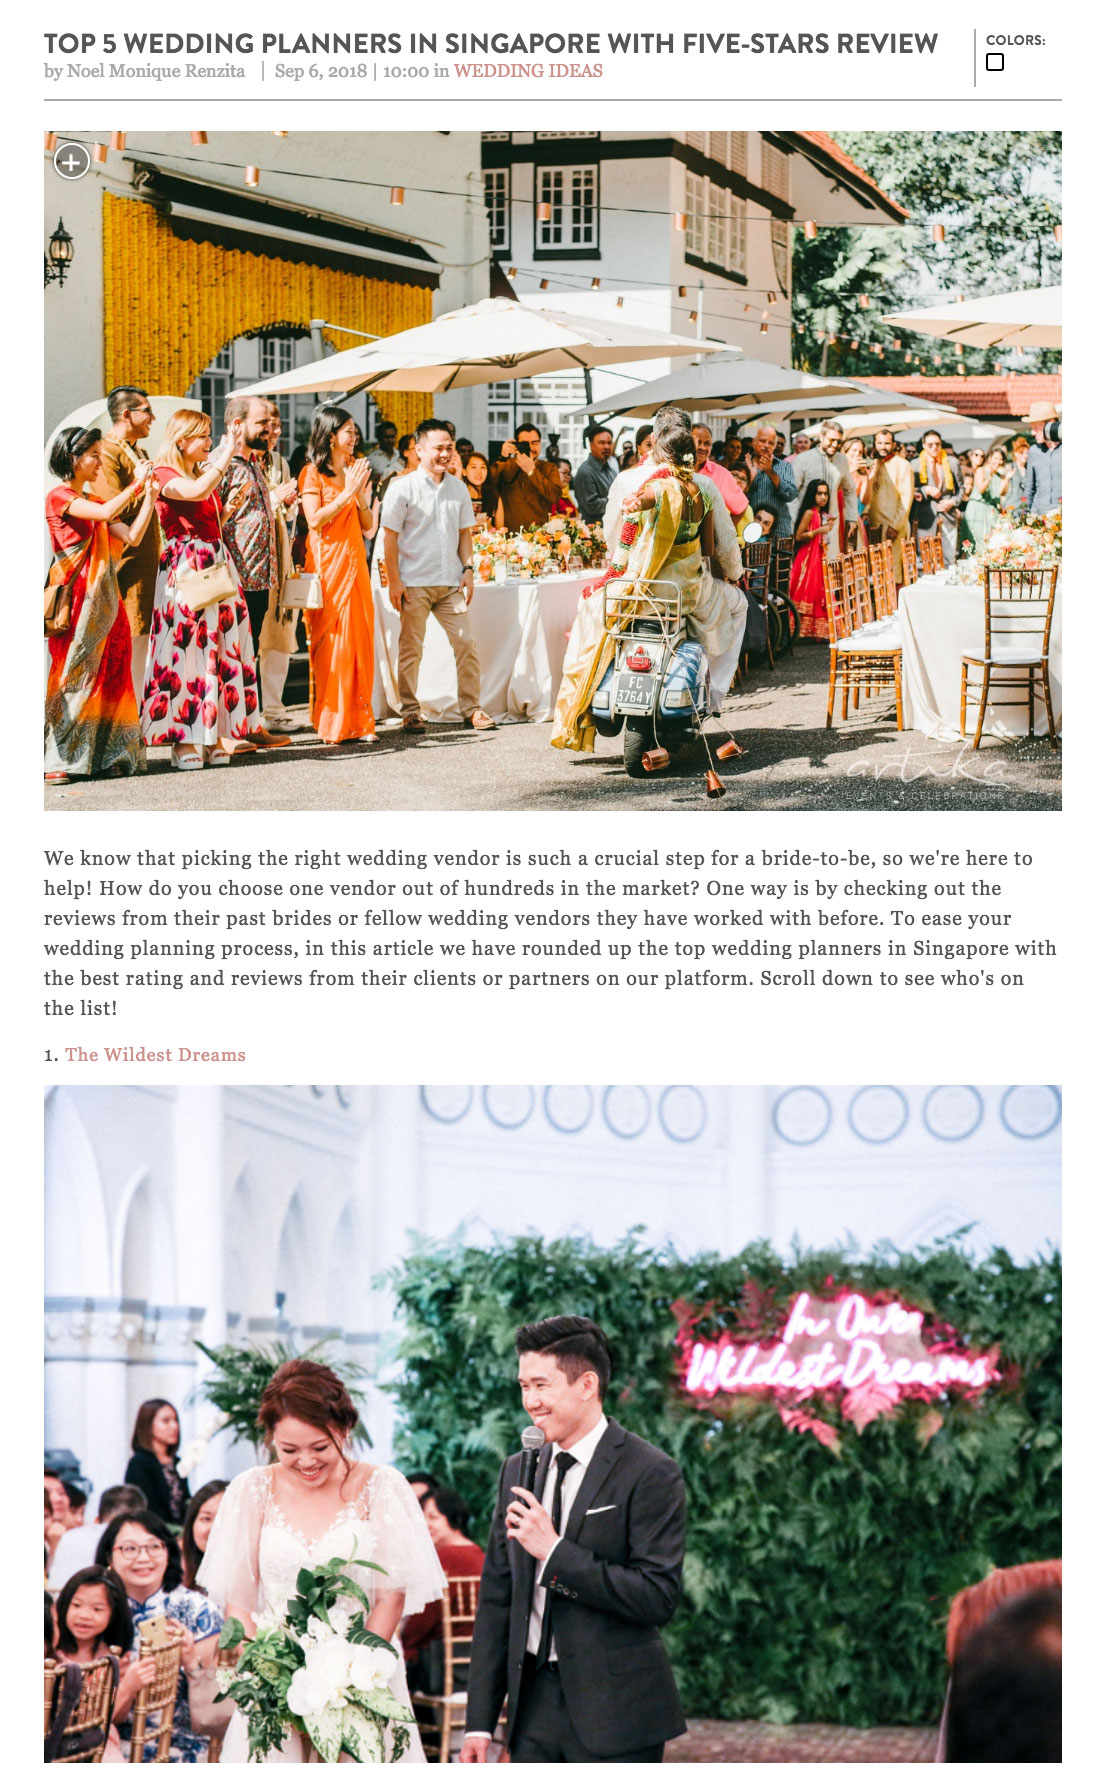 top five wedding planners in Singapore